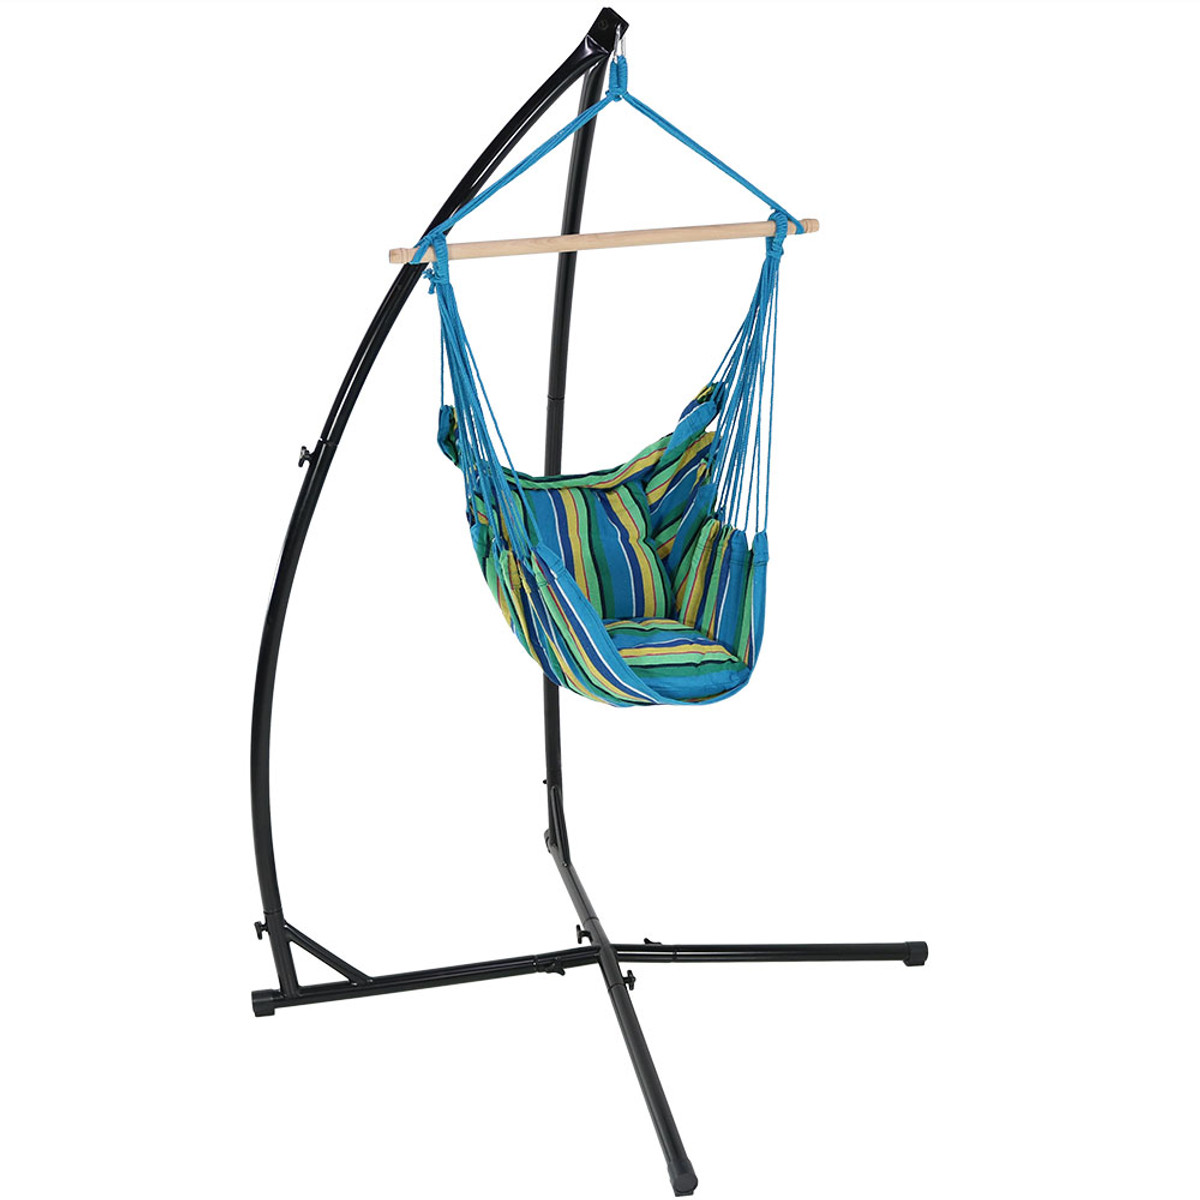 Superbe Sunnydaze Hanging Hammock Chair Swing And X Stand Set, Indoor Or Outdoor  Use, Max Weight: 250 Pounds